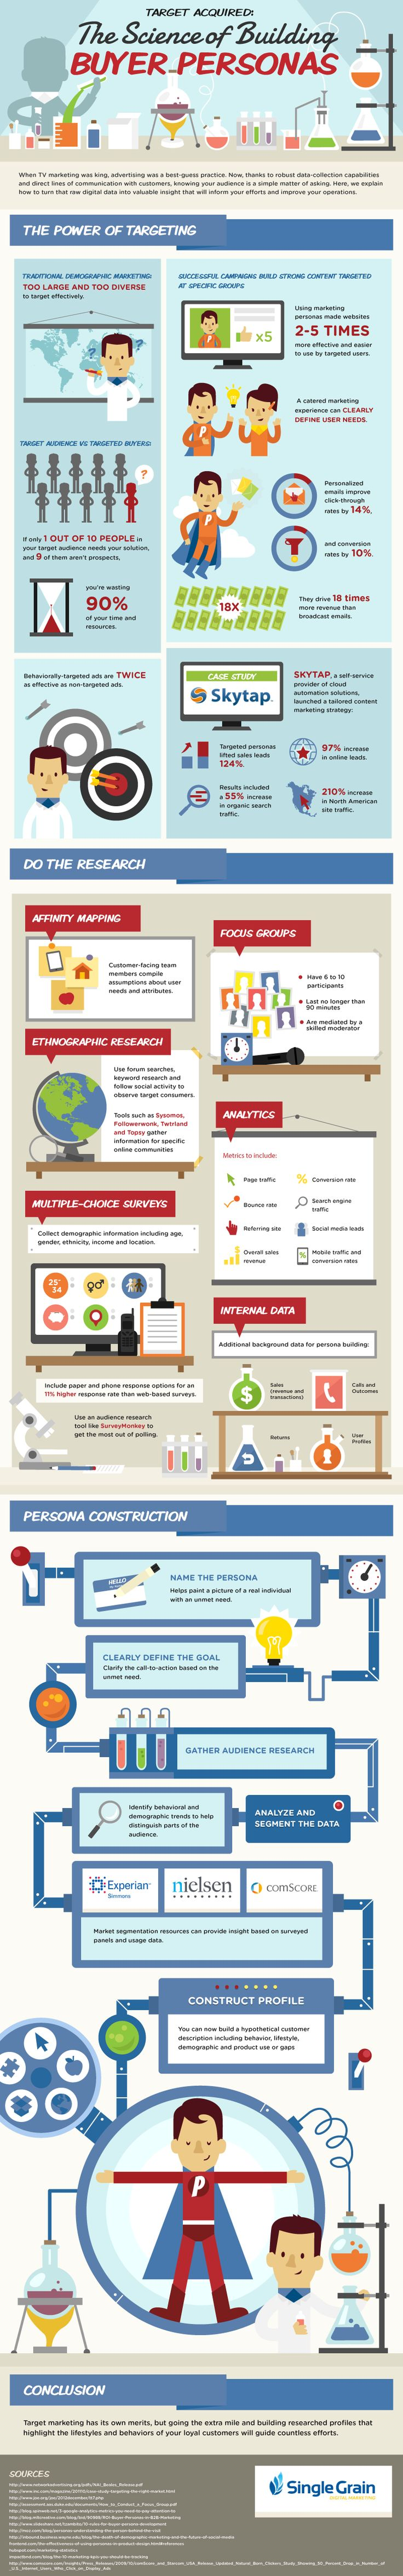 Digital-Marketing-Learn-what-buyer-personas-are-and-how-they-can-improve-your-social-media-marketi Digital Marketing : The Science of Building Buyer Personas - #infographic #digitalmarketing #socialm...